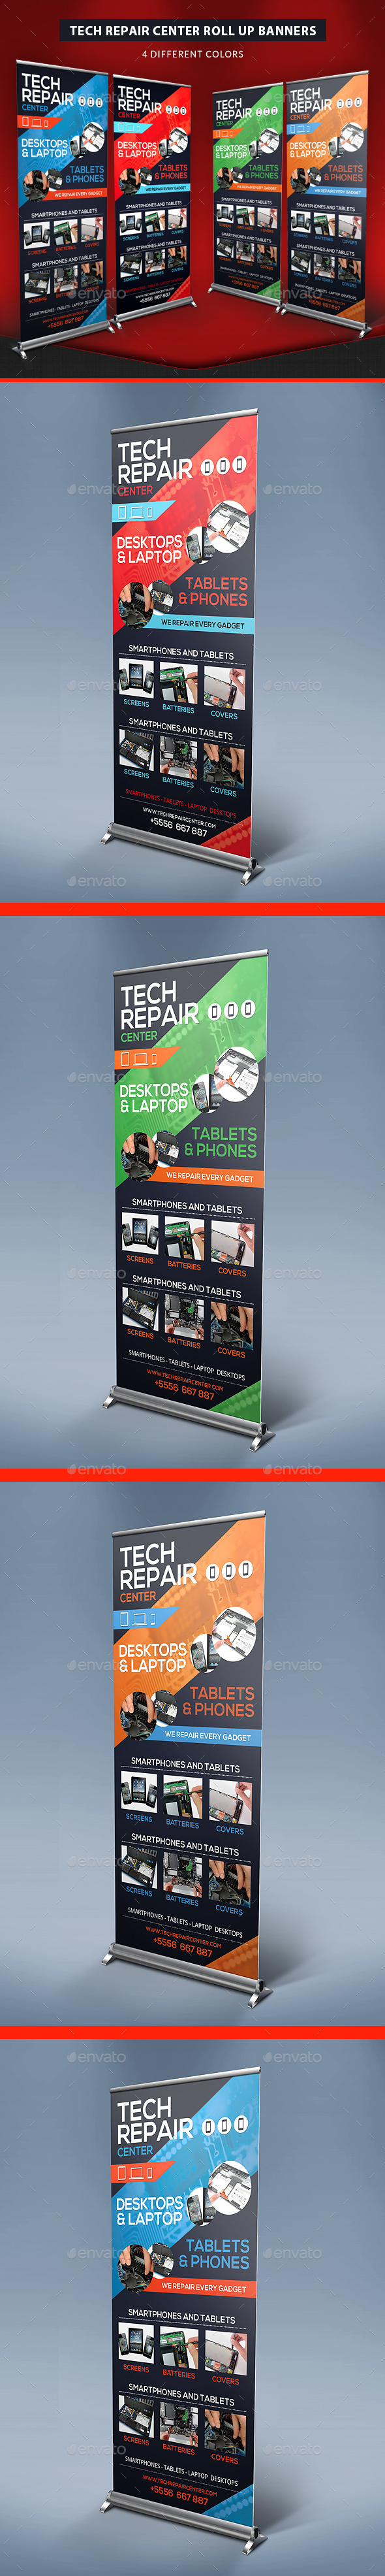 Tech Repair Center Roll Up Banners - Signage Print Templates